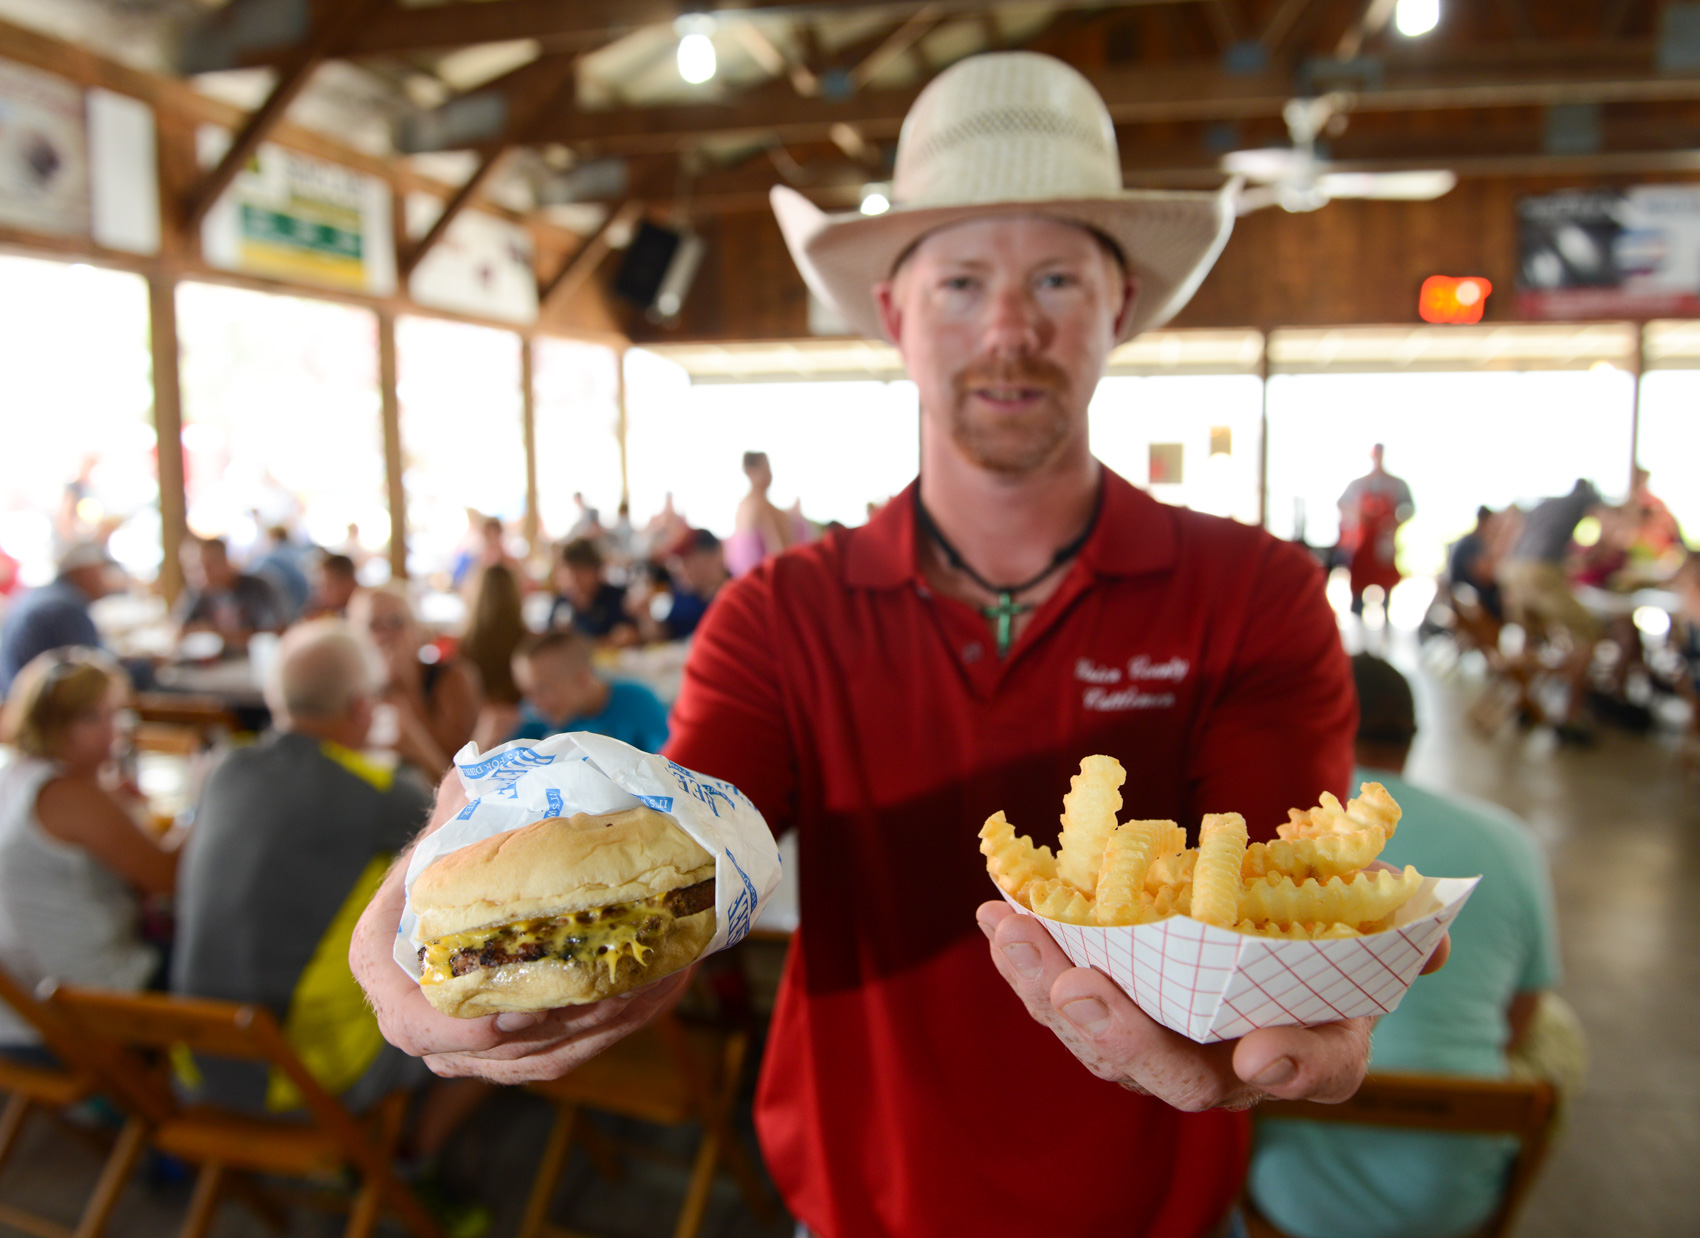 Cattleman's Beef Quarters, Iowa State Fair, Best Foods at the Iowa State Fair, What to eat at the Iowa State Fair, food & drinks